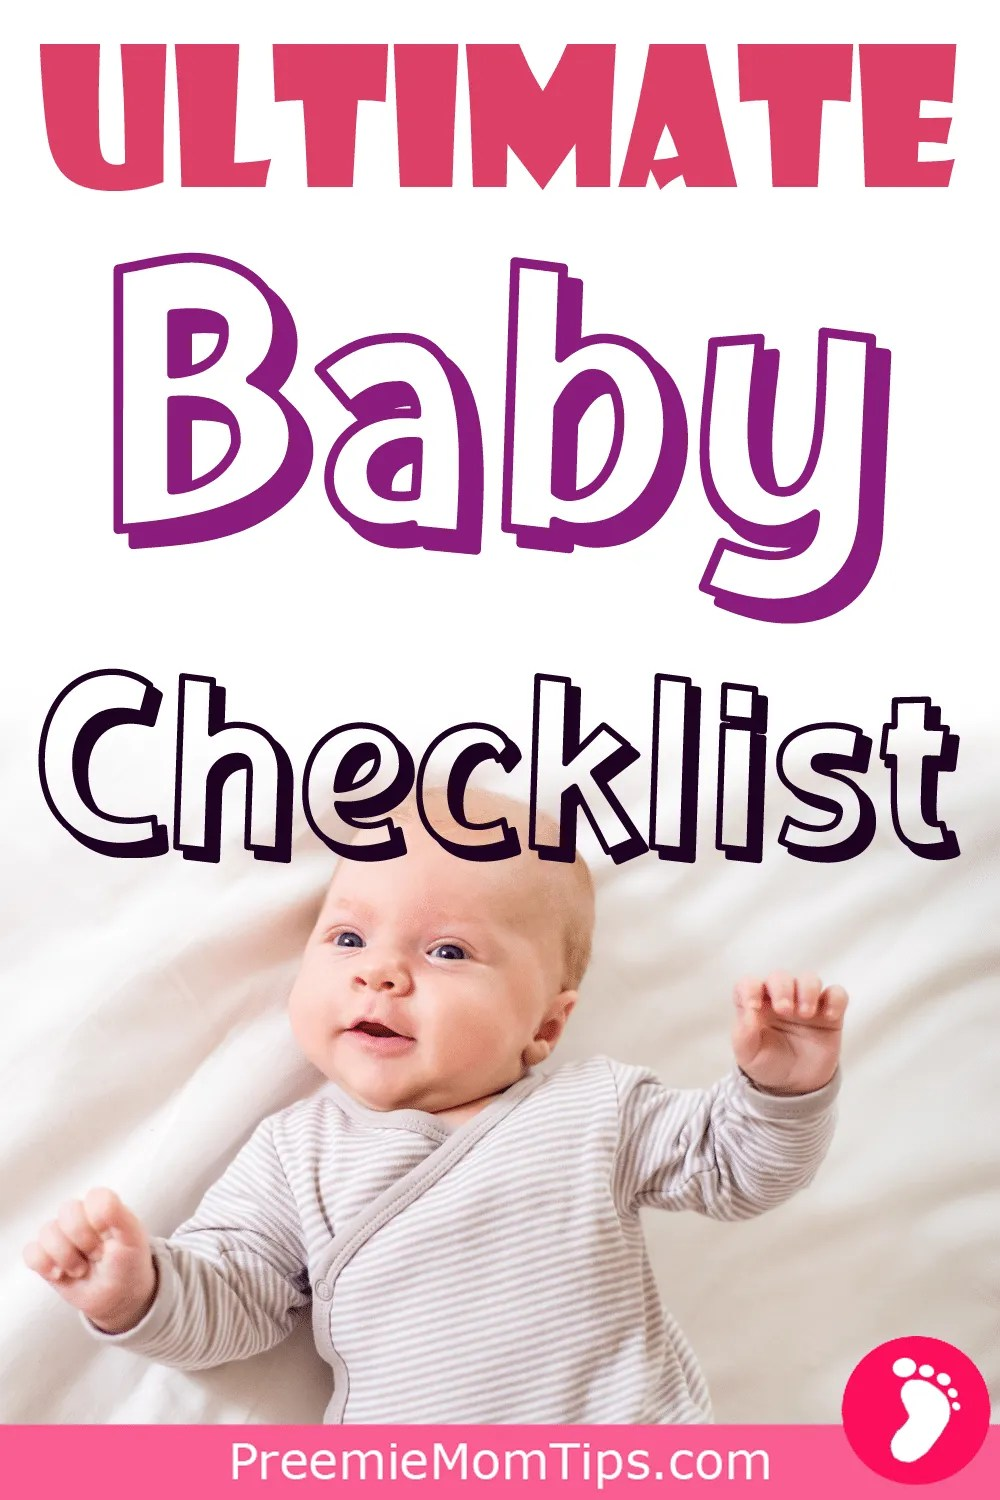 Start your baby registry the right way with the ultimate checklist, with everythign you need for you and your little one!